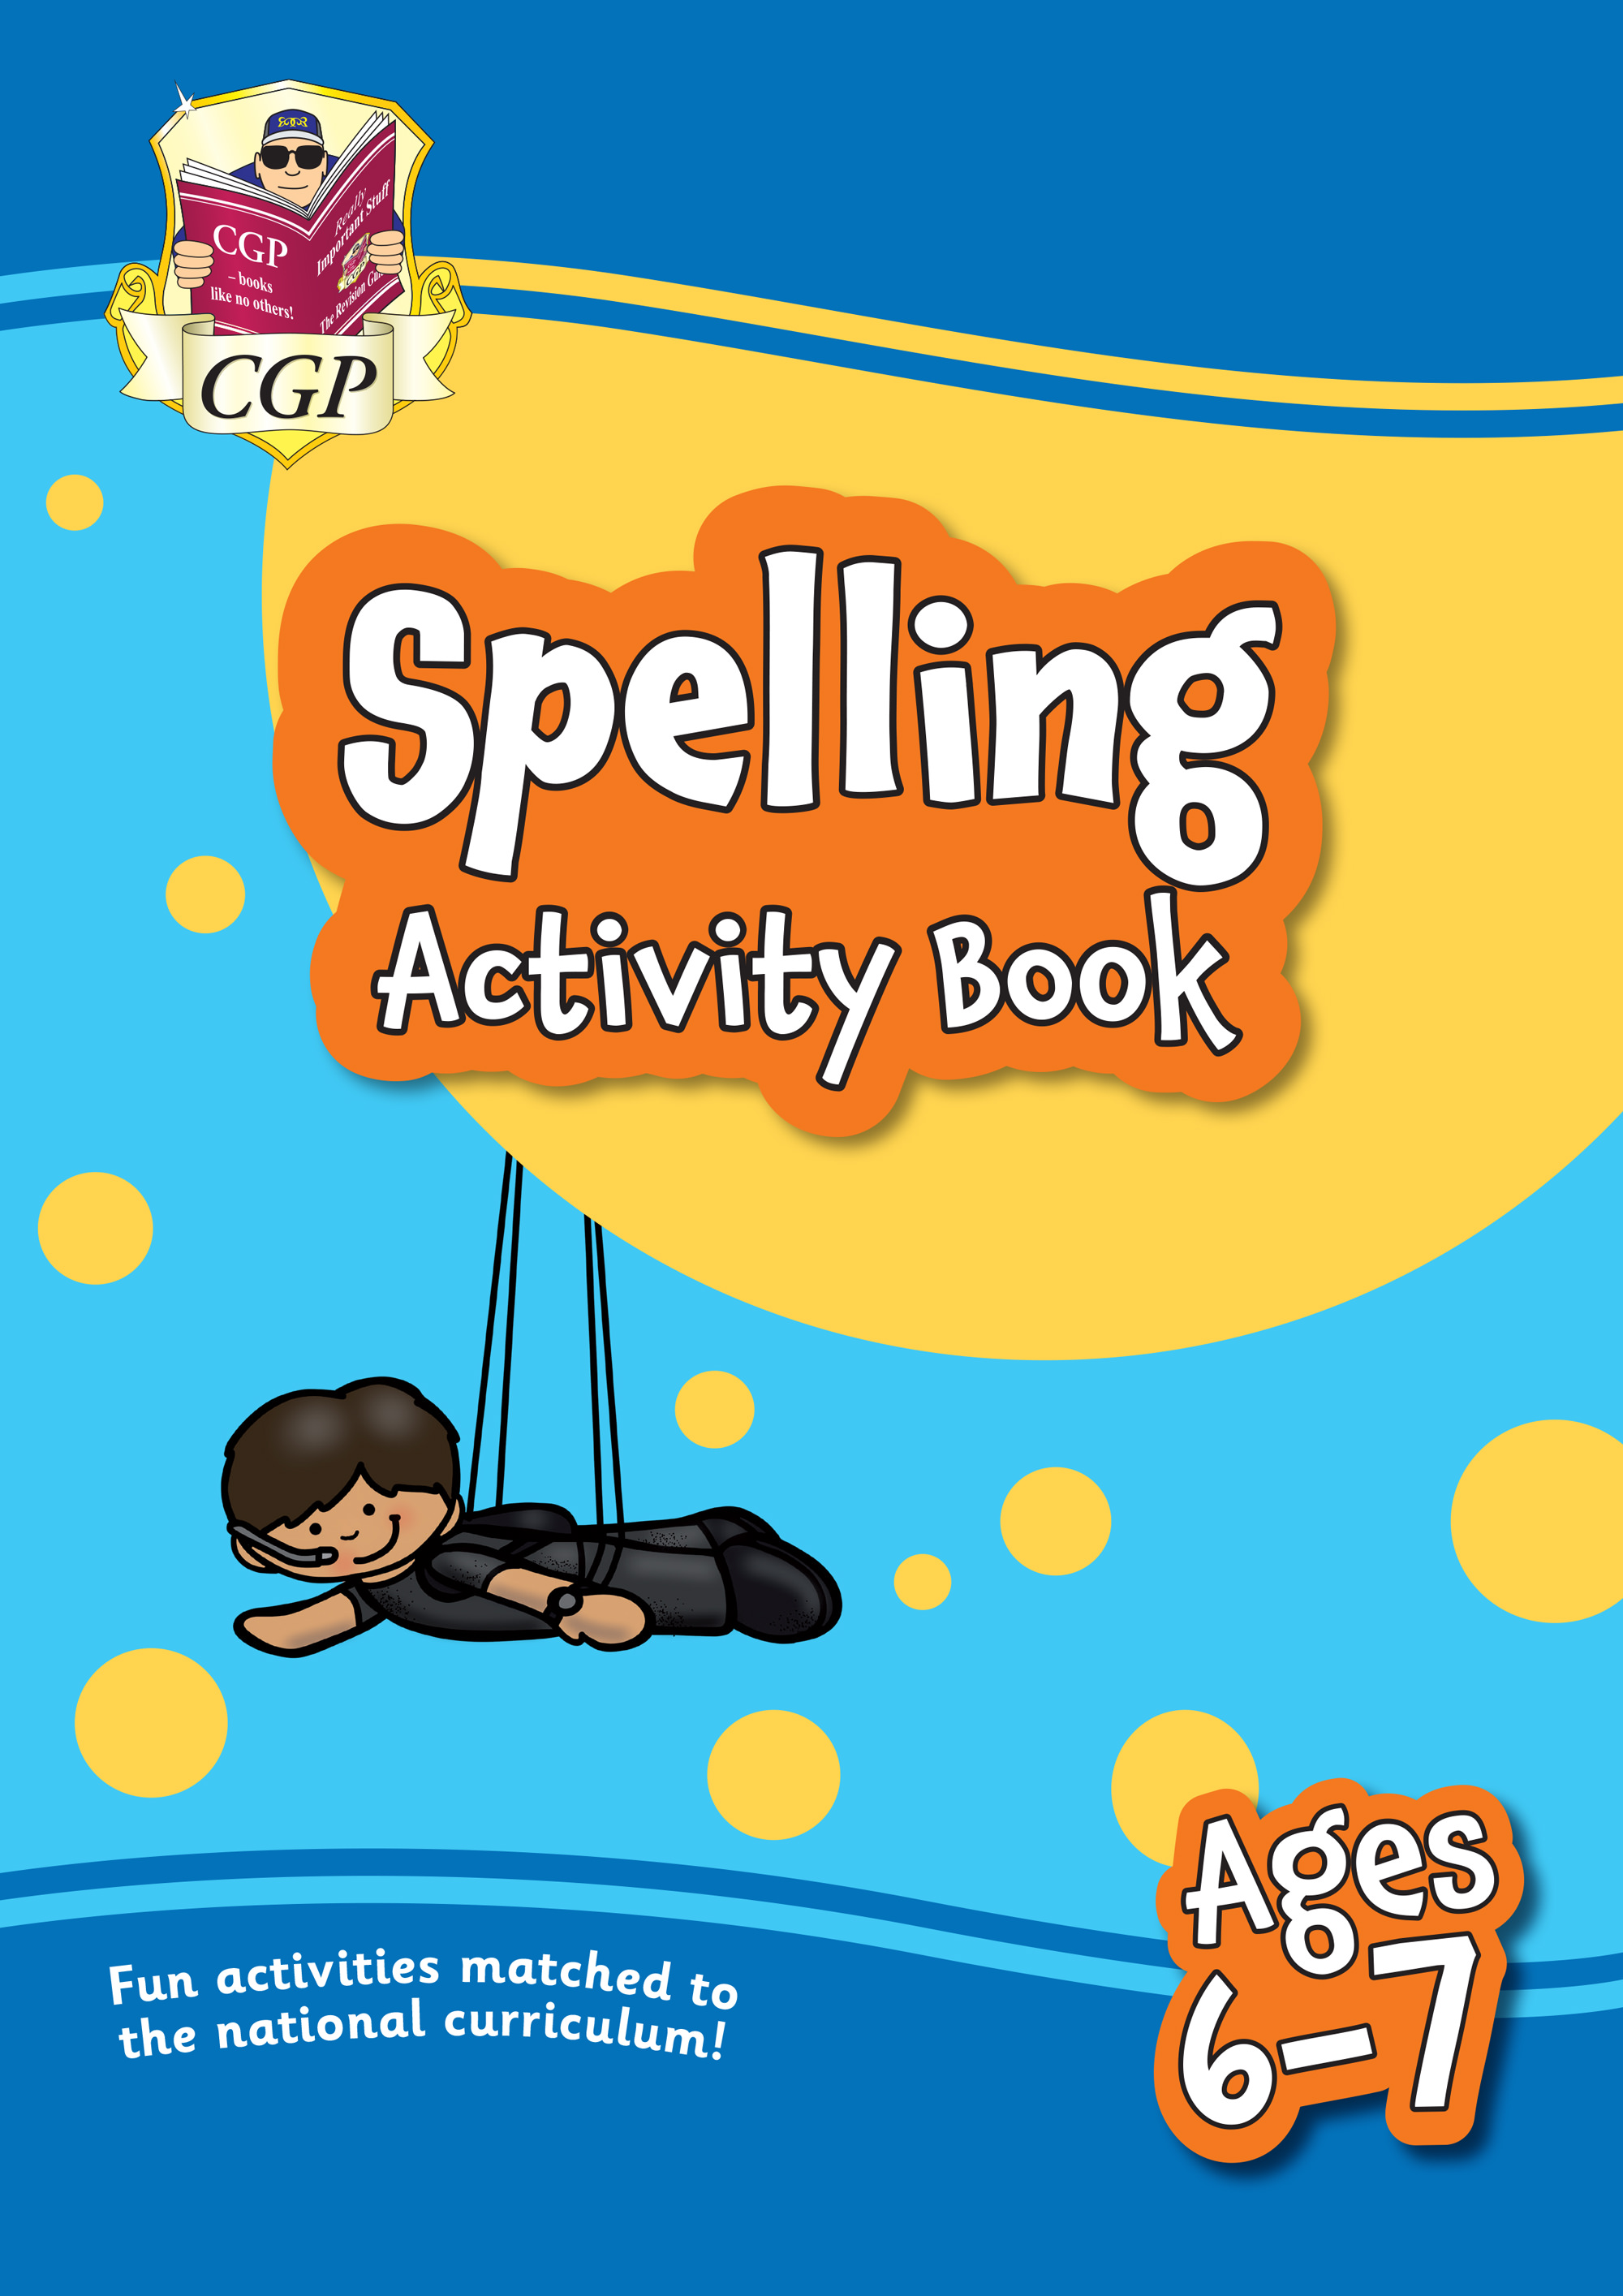 EPFS2Q11 - New Spelling Home Learning Activity Book for Ages 6-7